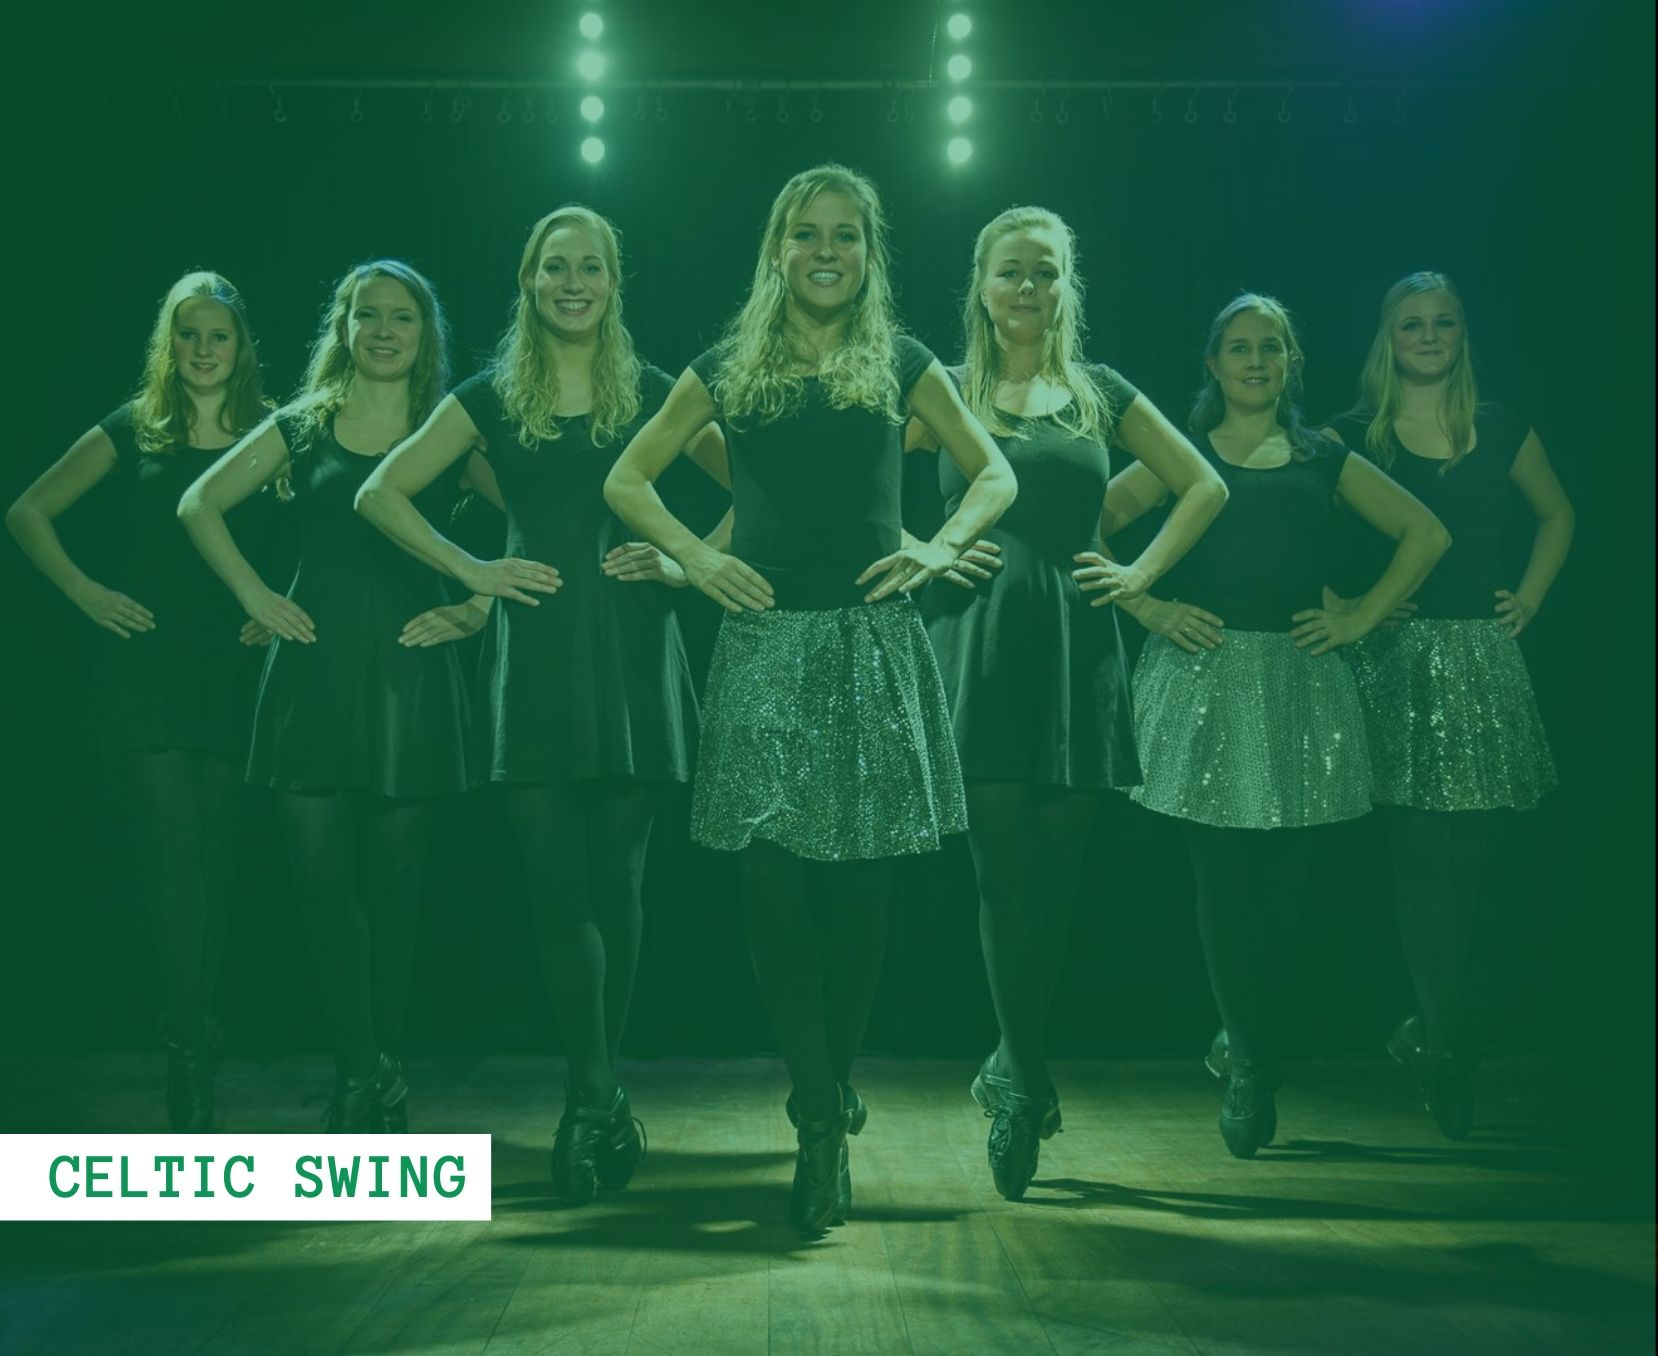 celtic swing - st patricks day 2020 the hague